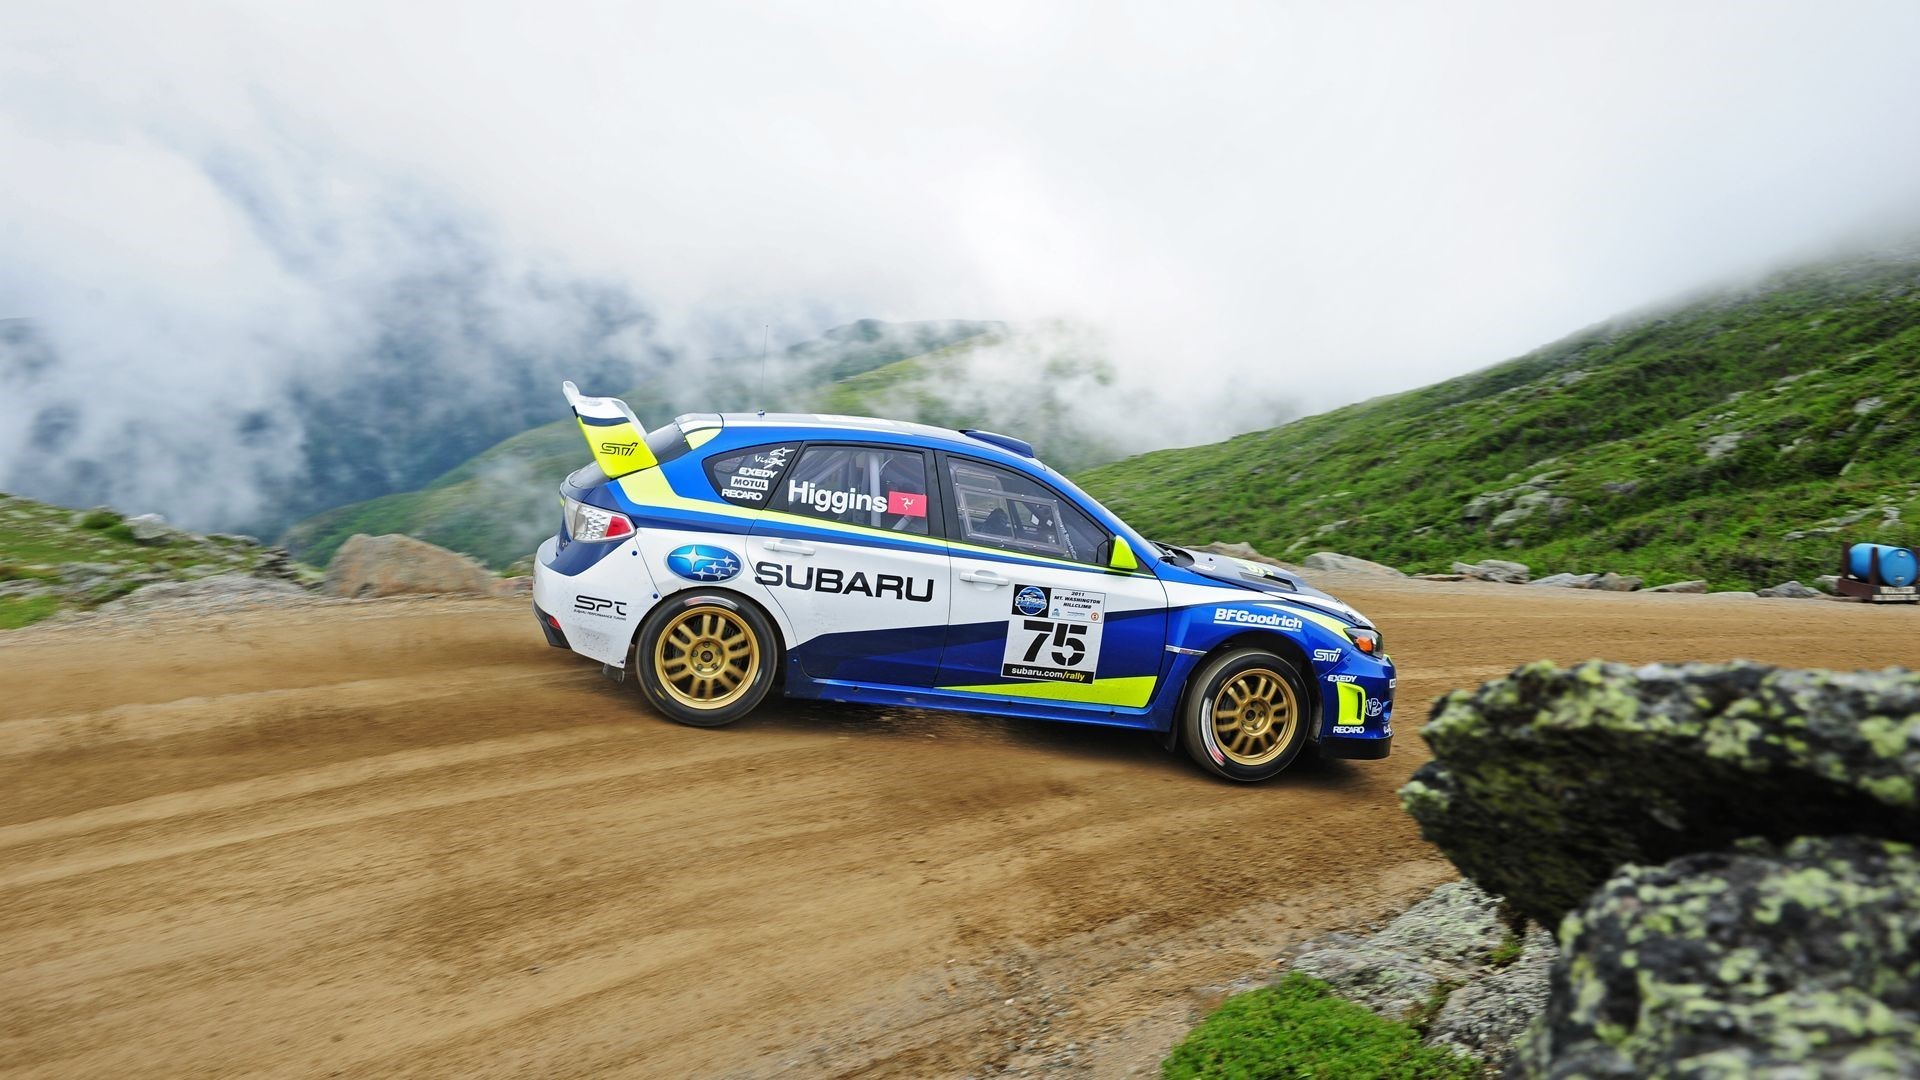 Subaru Rally Car 4K Wallpapers